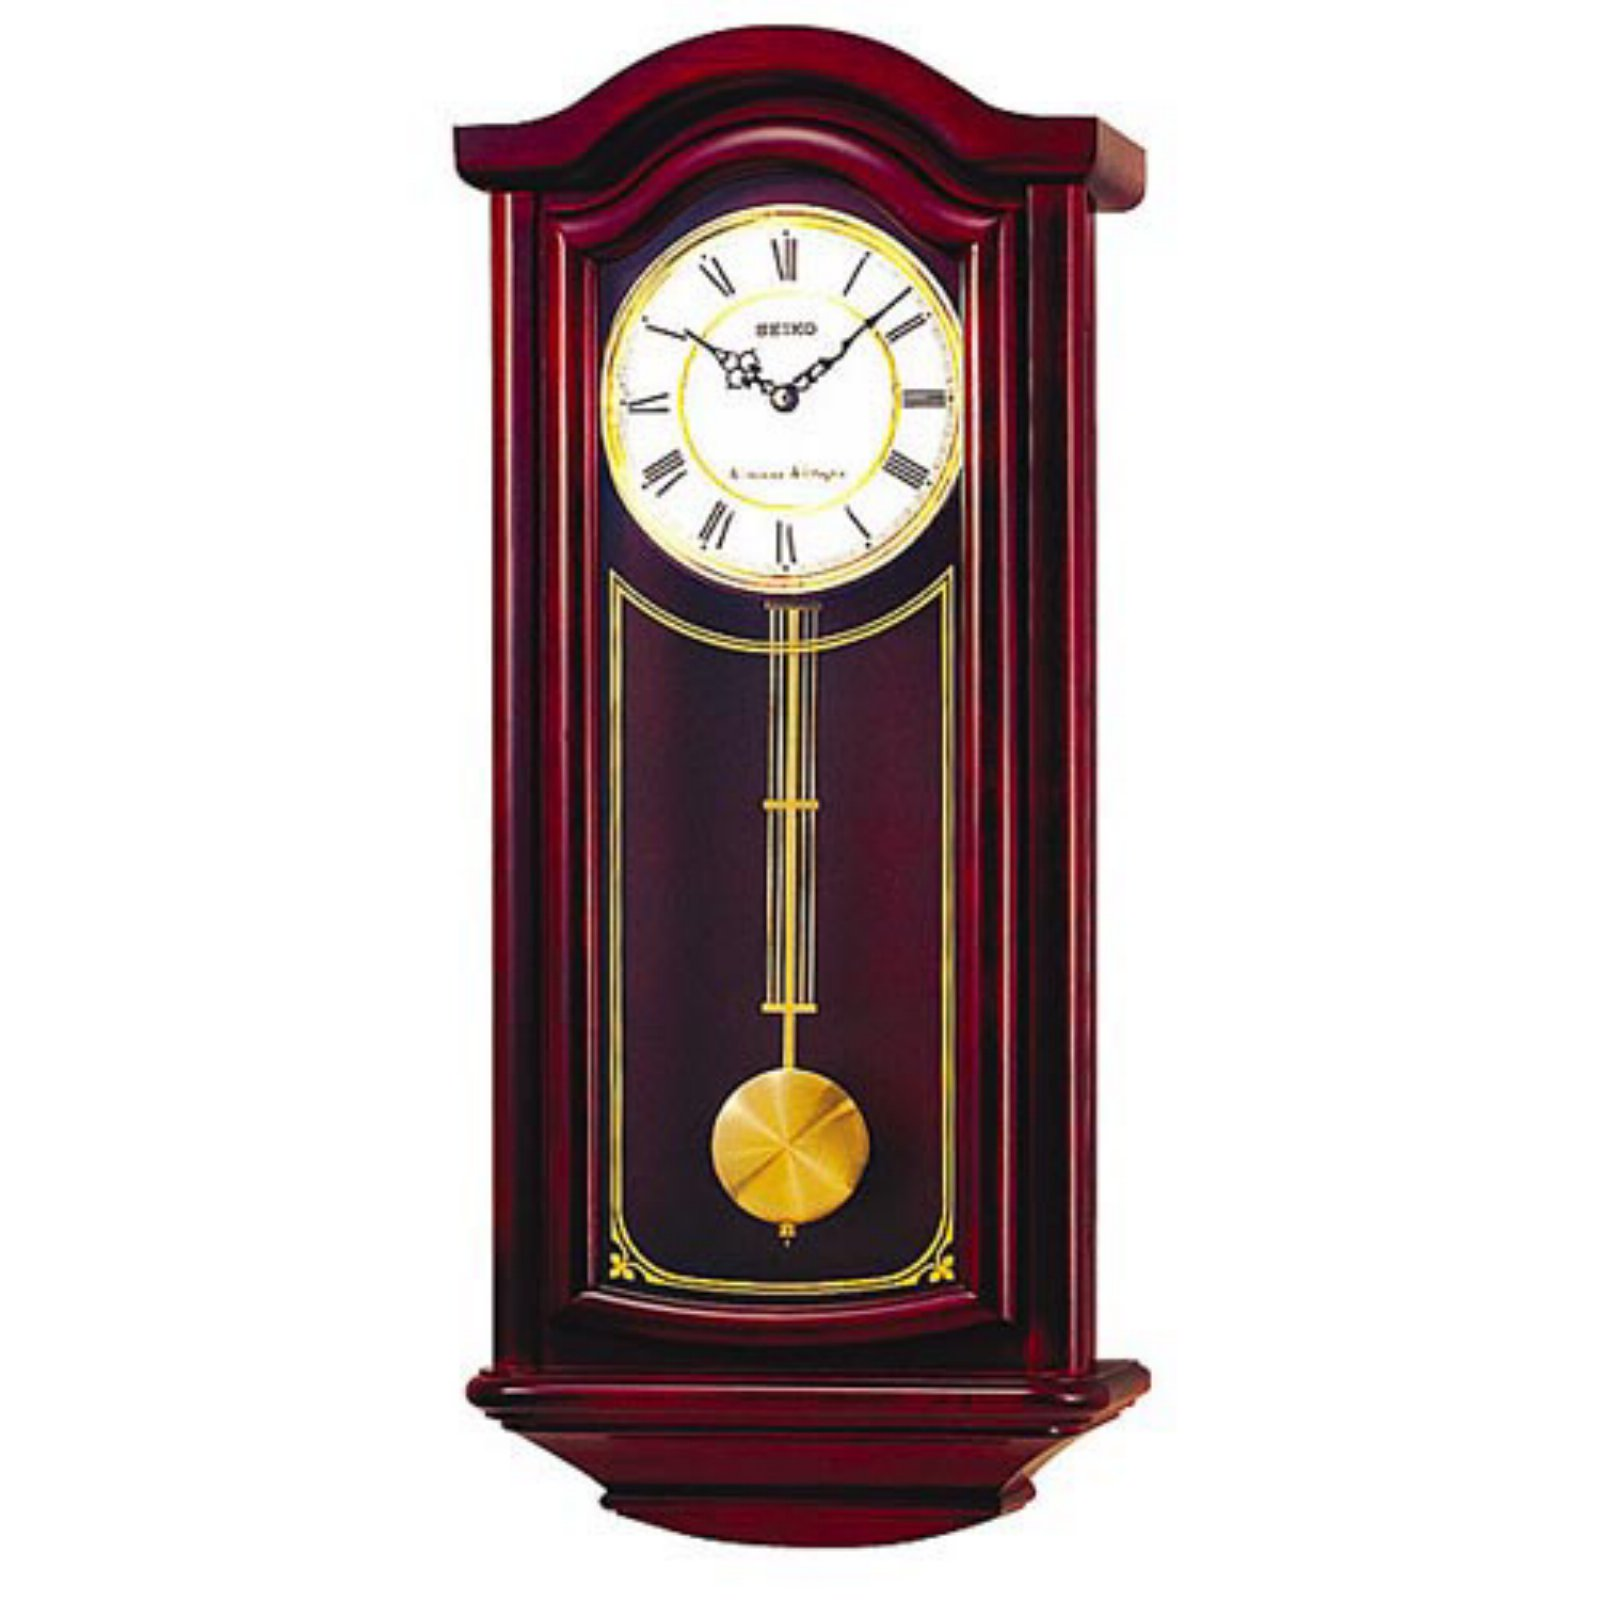 Seiko Mahogany Wood Wall Clock - 11.75 Inches Wide